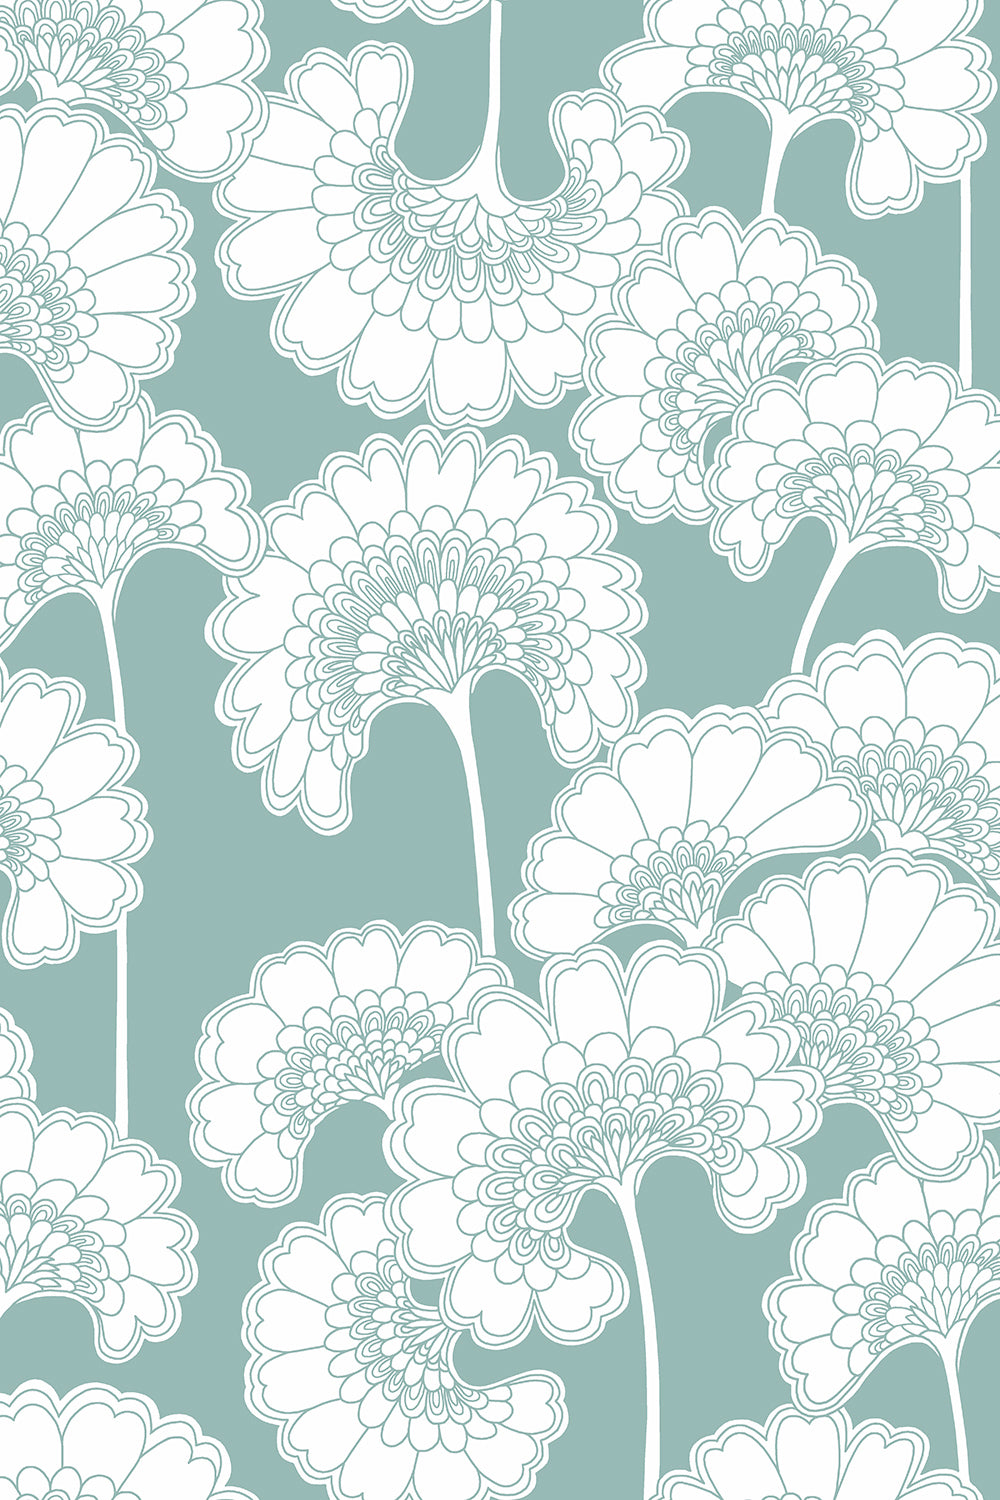 Wallpaper Tagged Blue Florence Broadhurst